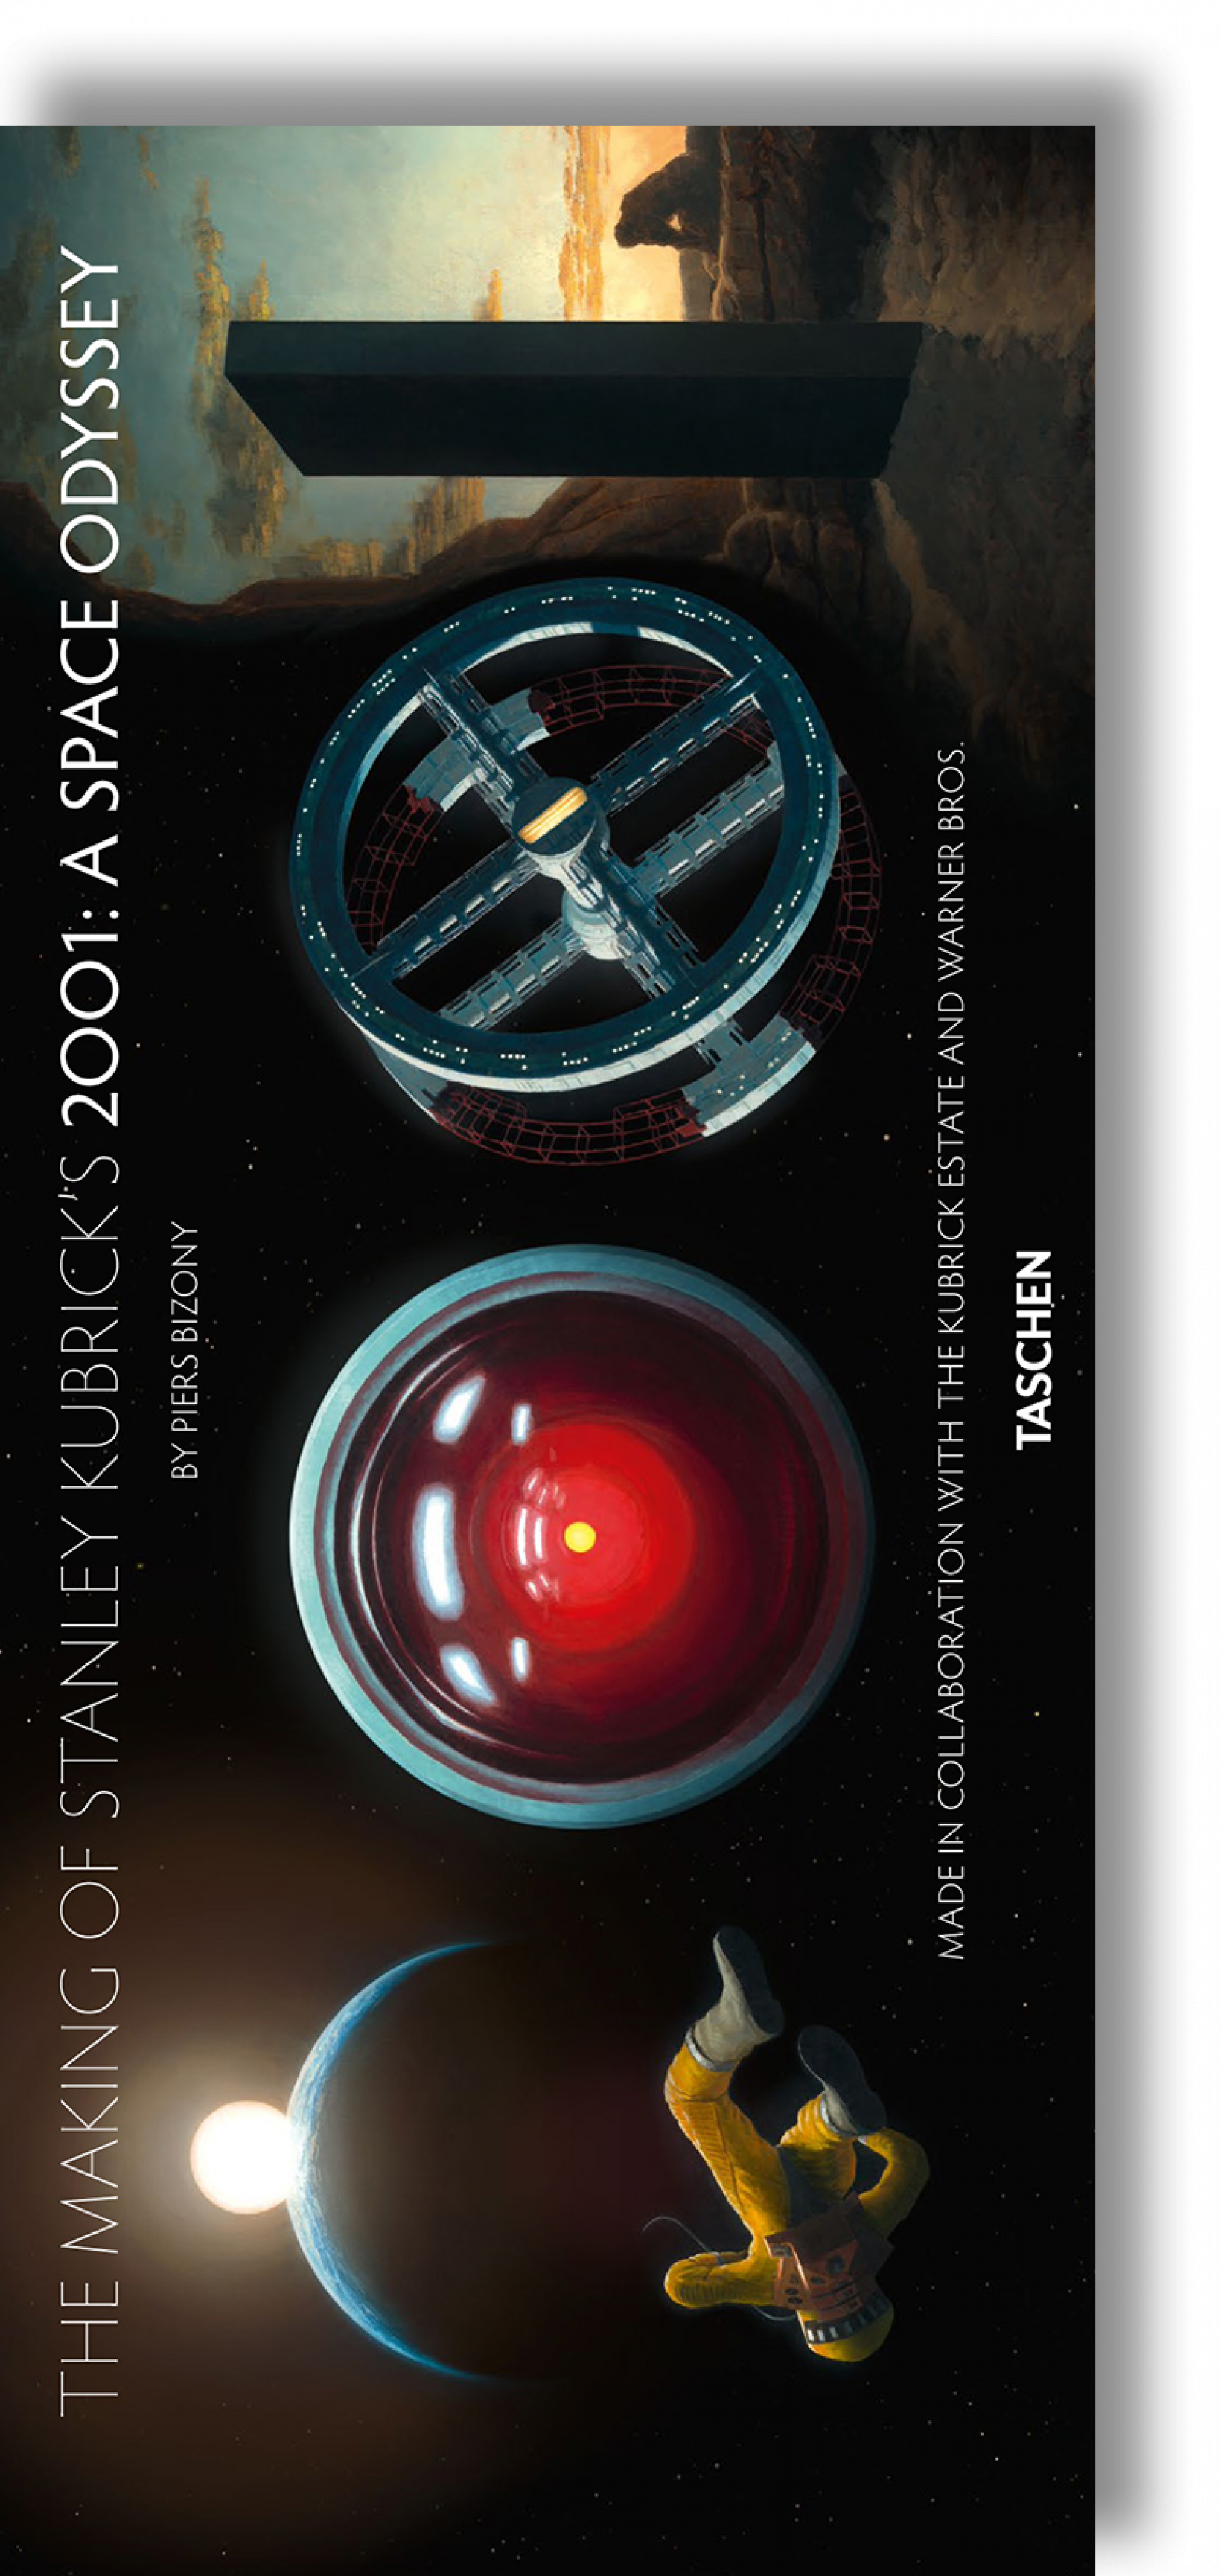 The Making of Stanley Kubrick's '2001: A Space Odyssey' - Bizony Piers